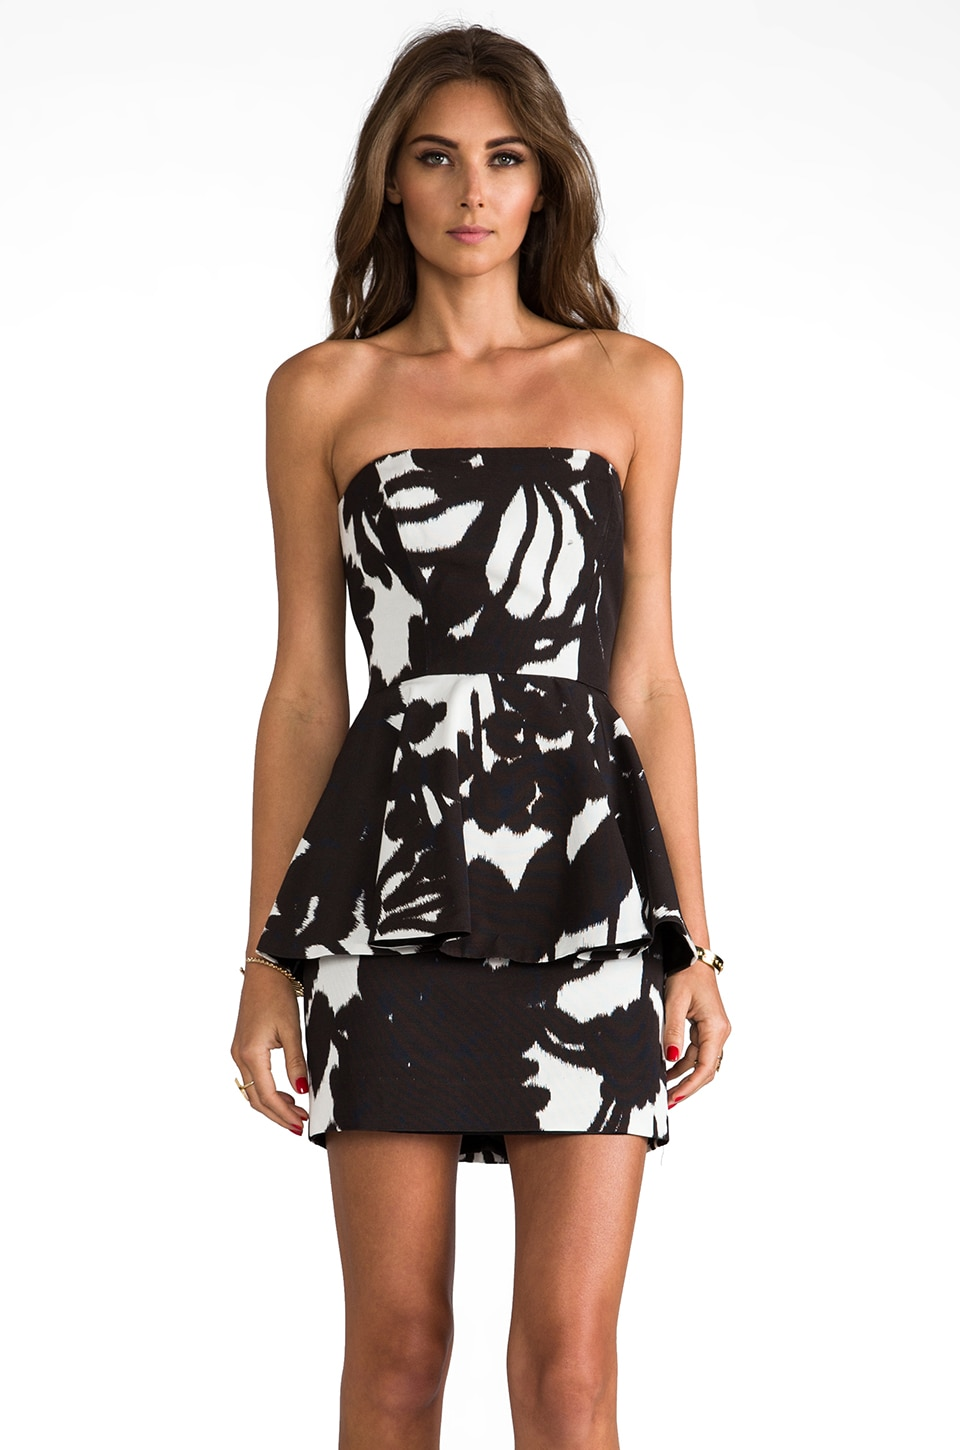 MILLY RUNWAY Floral Shadow Print Paneled Strapless Full Peplum Dress in Ivory